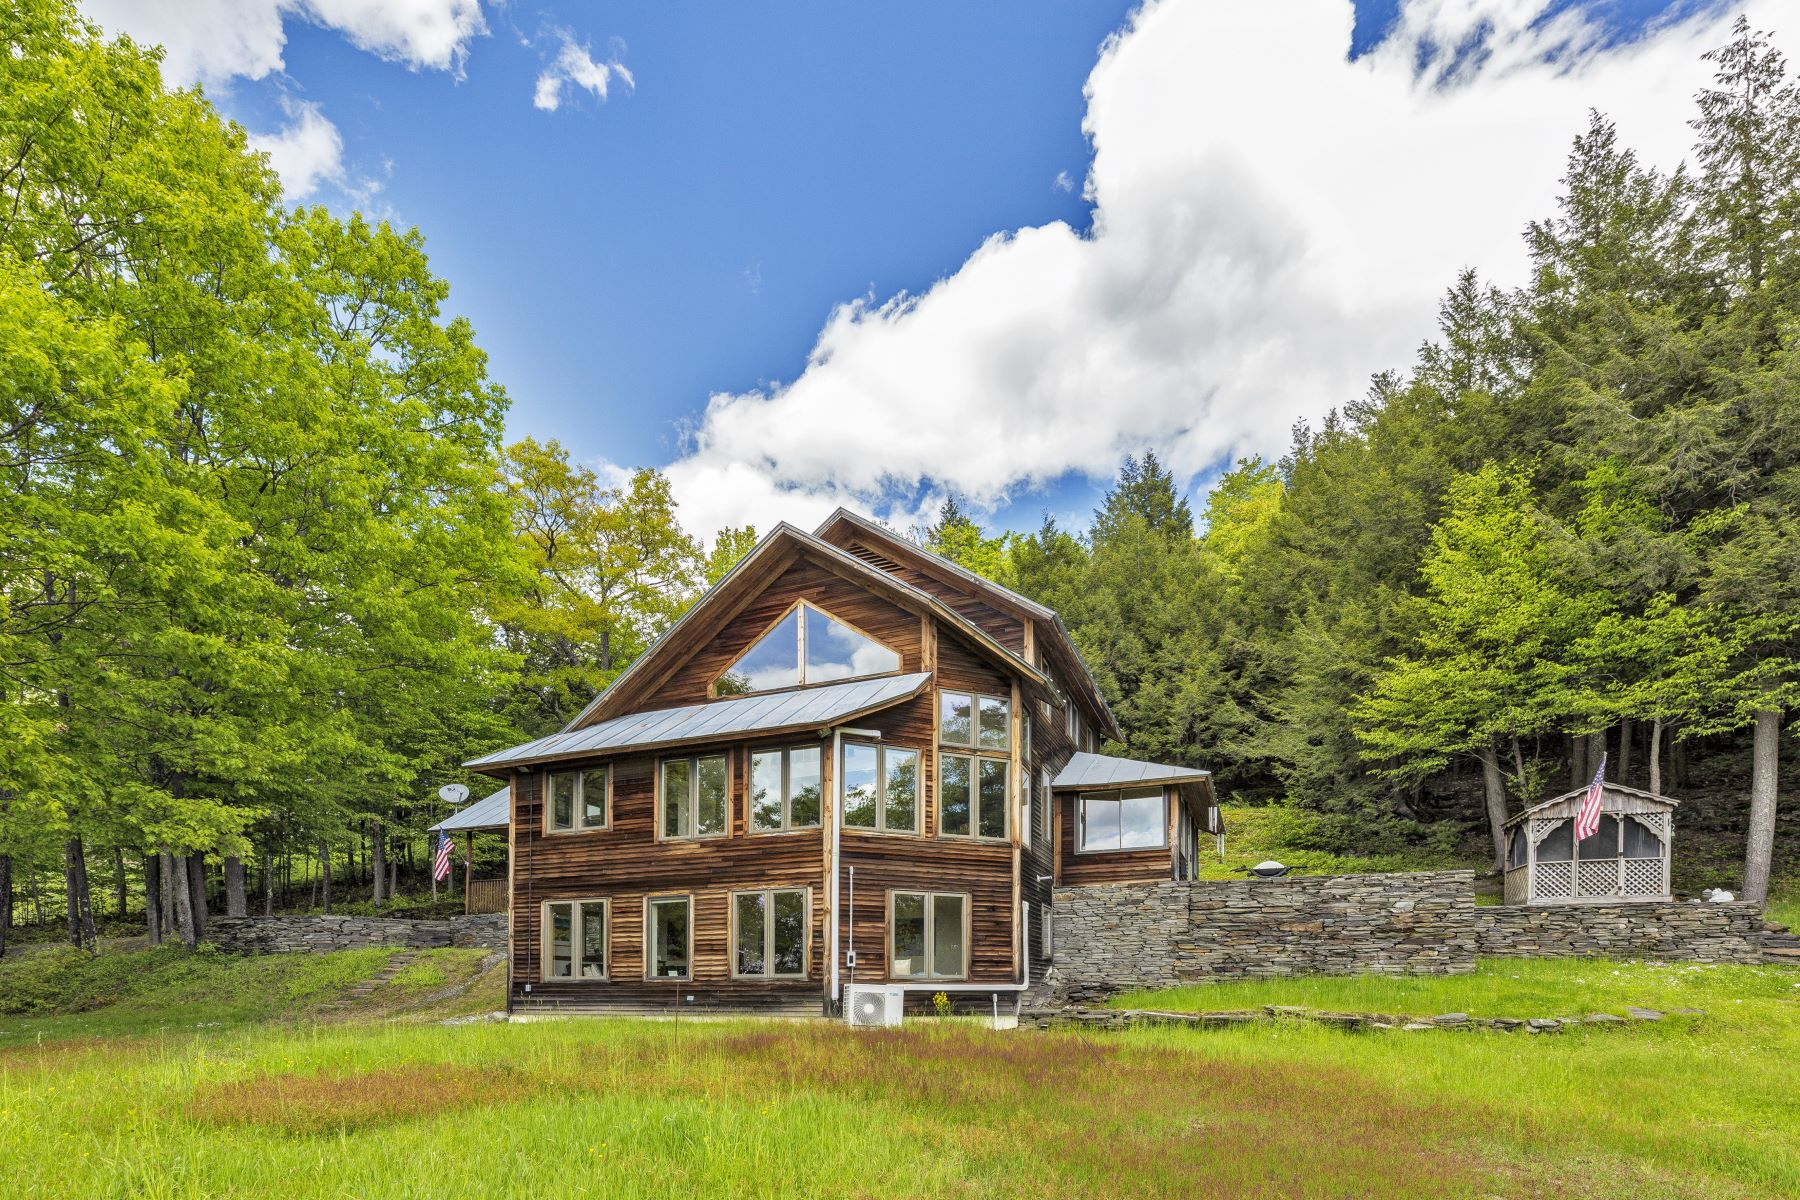 Single Family Home for Sale at Two Bedroom Contemporary with Views 31 Dorset Ln Lebanon, New Hampshire 03766 United States